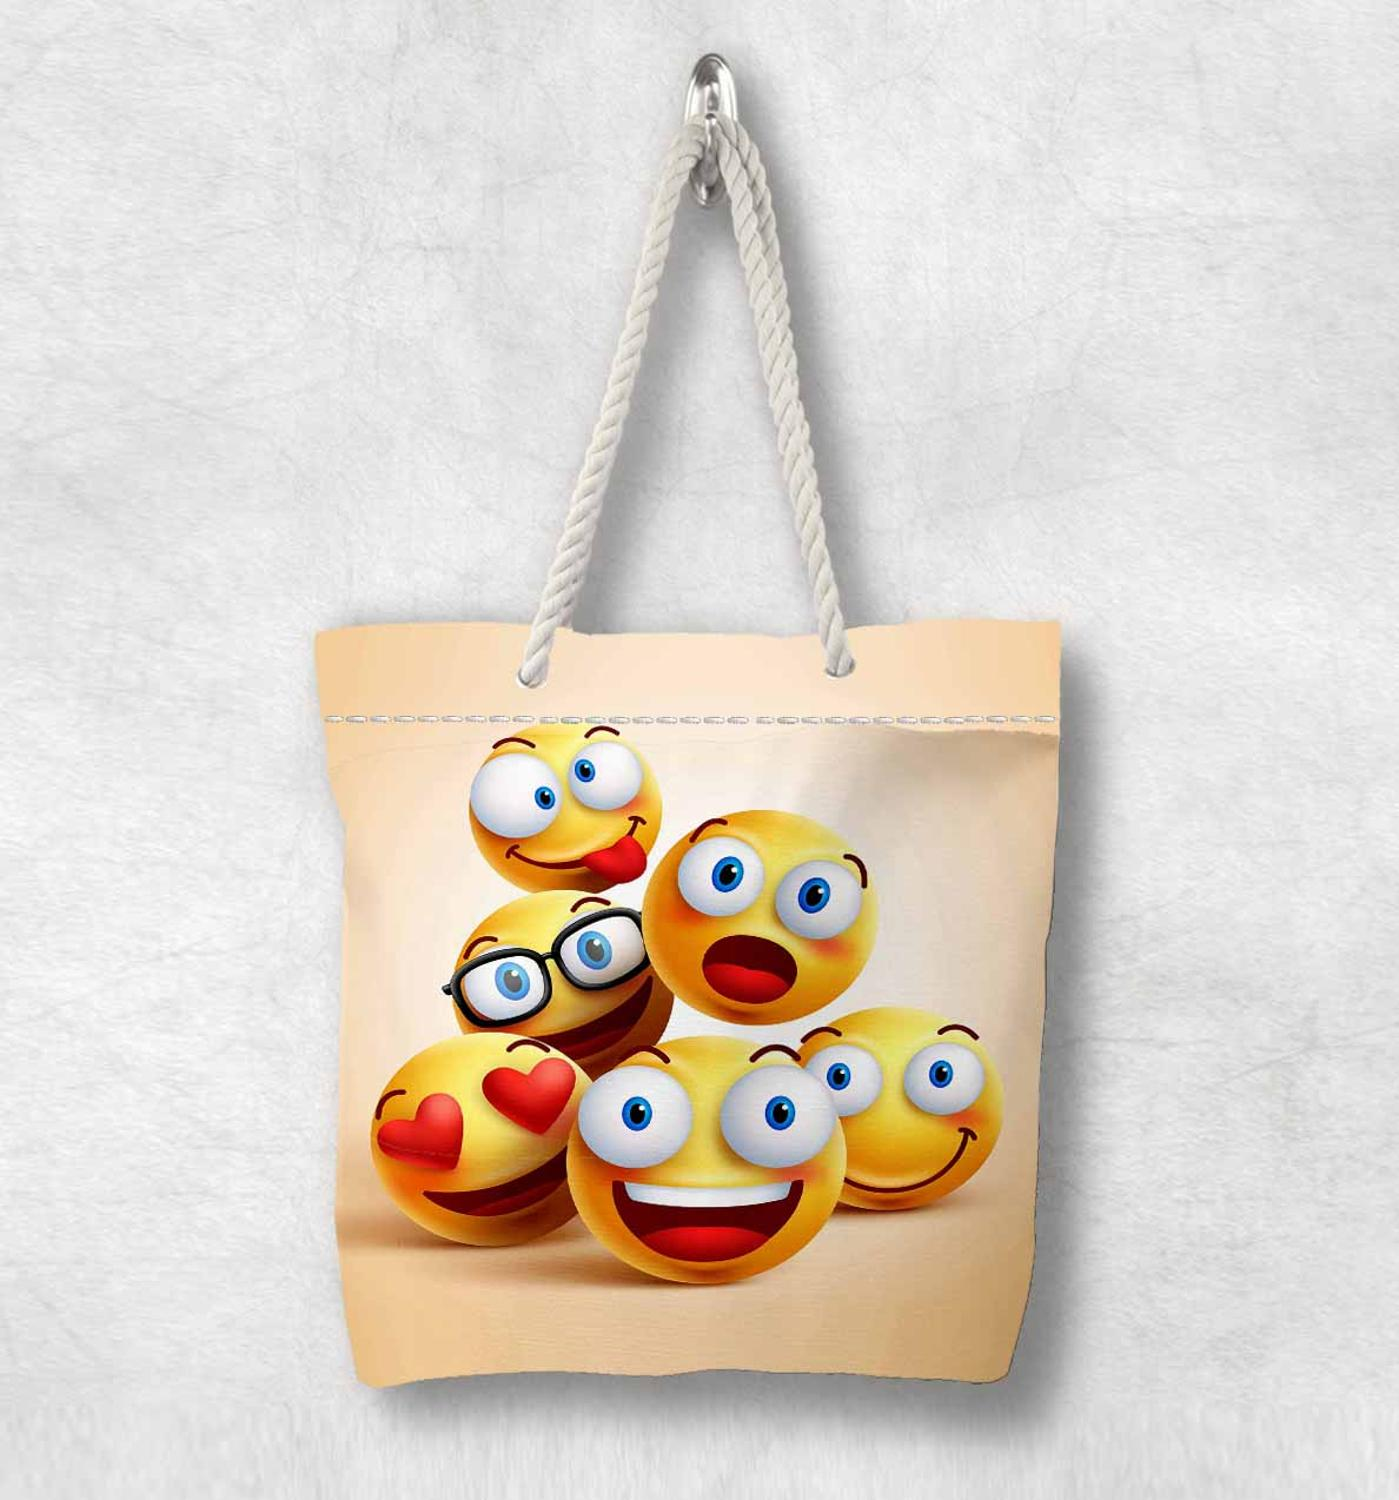 Else Yellow Little Cute Funny Emoji New Fashion White Rope Handle Canvas Bag Cotton Canvas Zippered Tote Bag Shoulder Bag